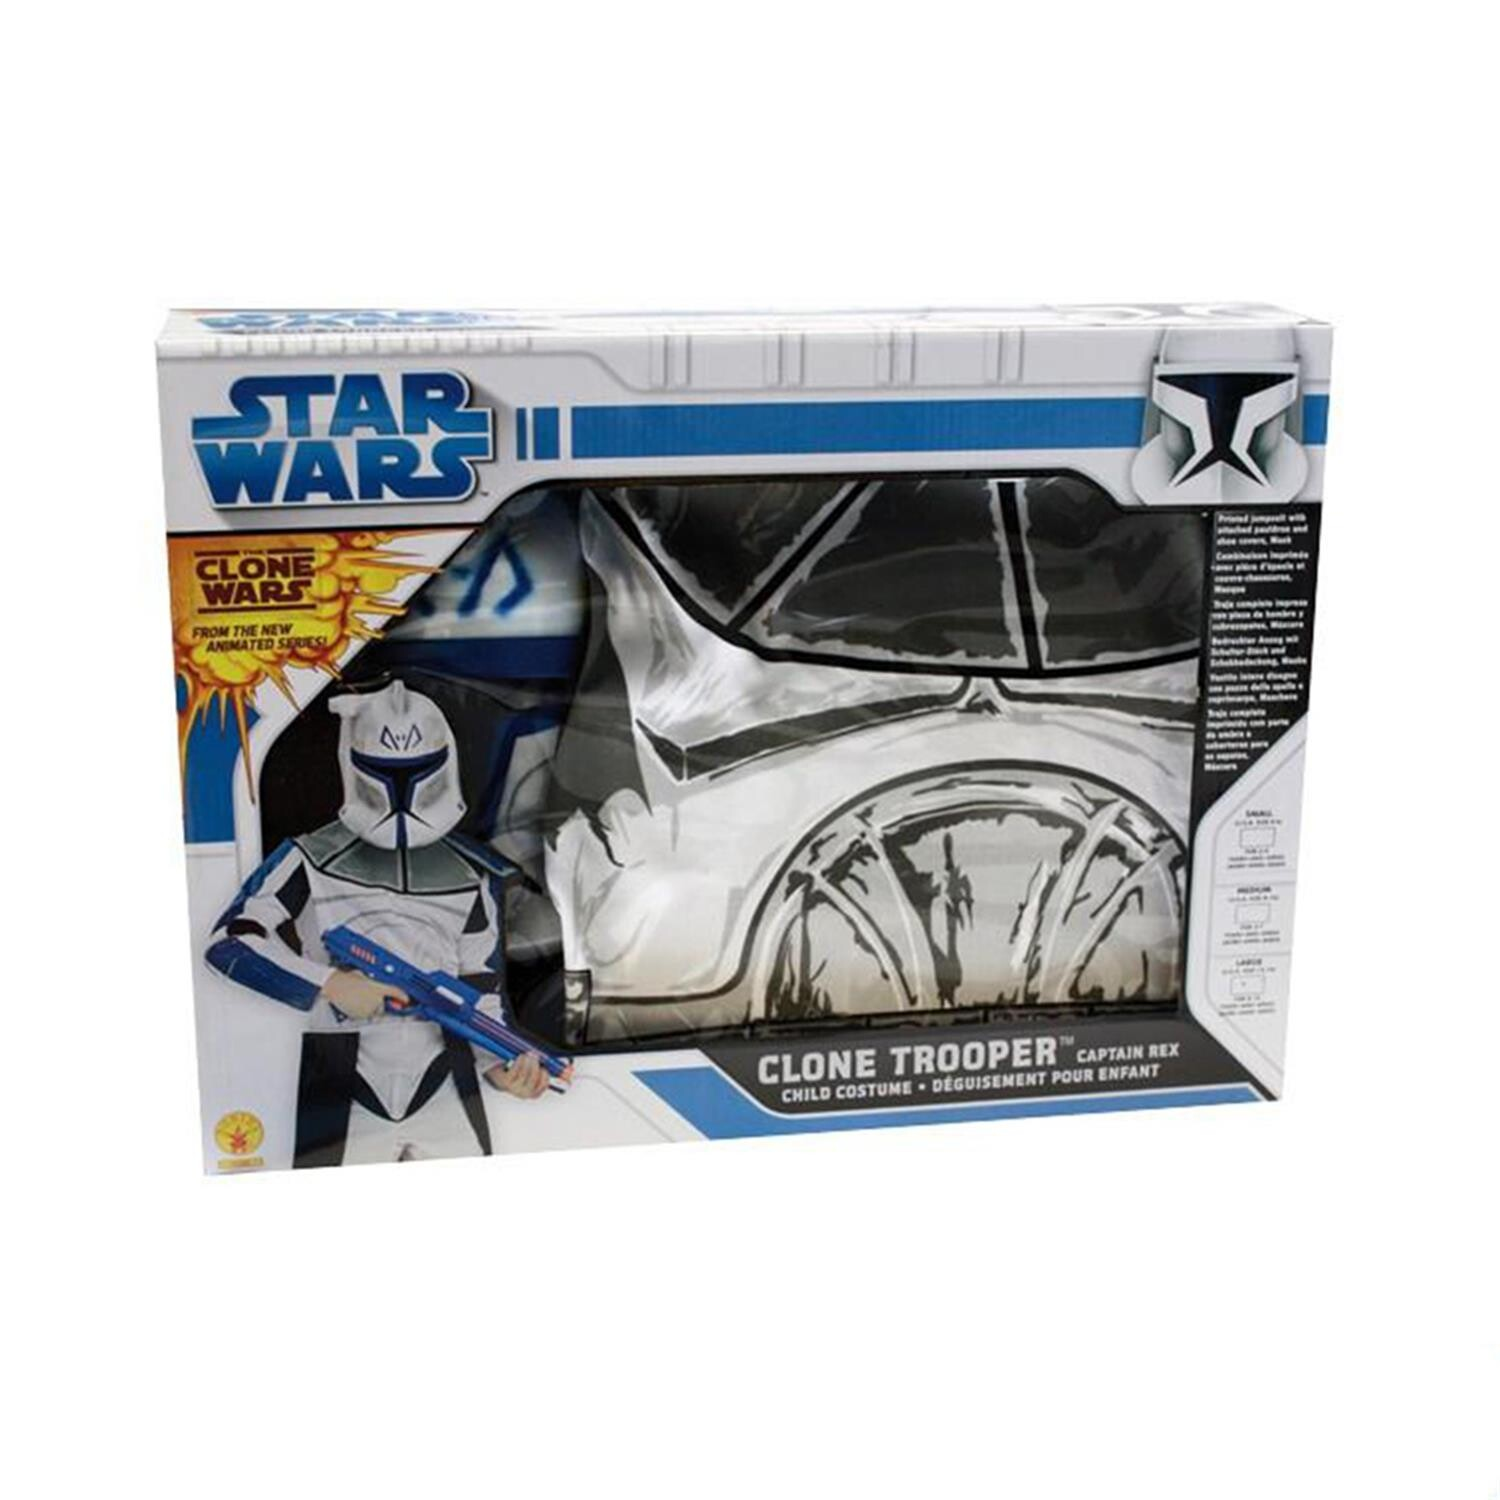 star wars kost m set f r kinder clone trooper captain rex x comics. Black Bedroom Furniture Sets. Home Design Ideas